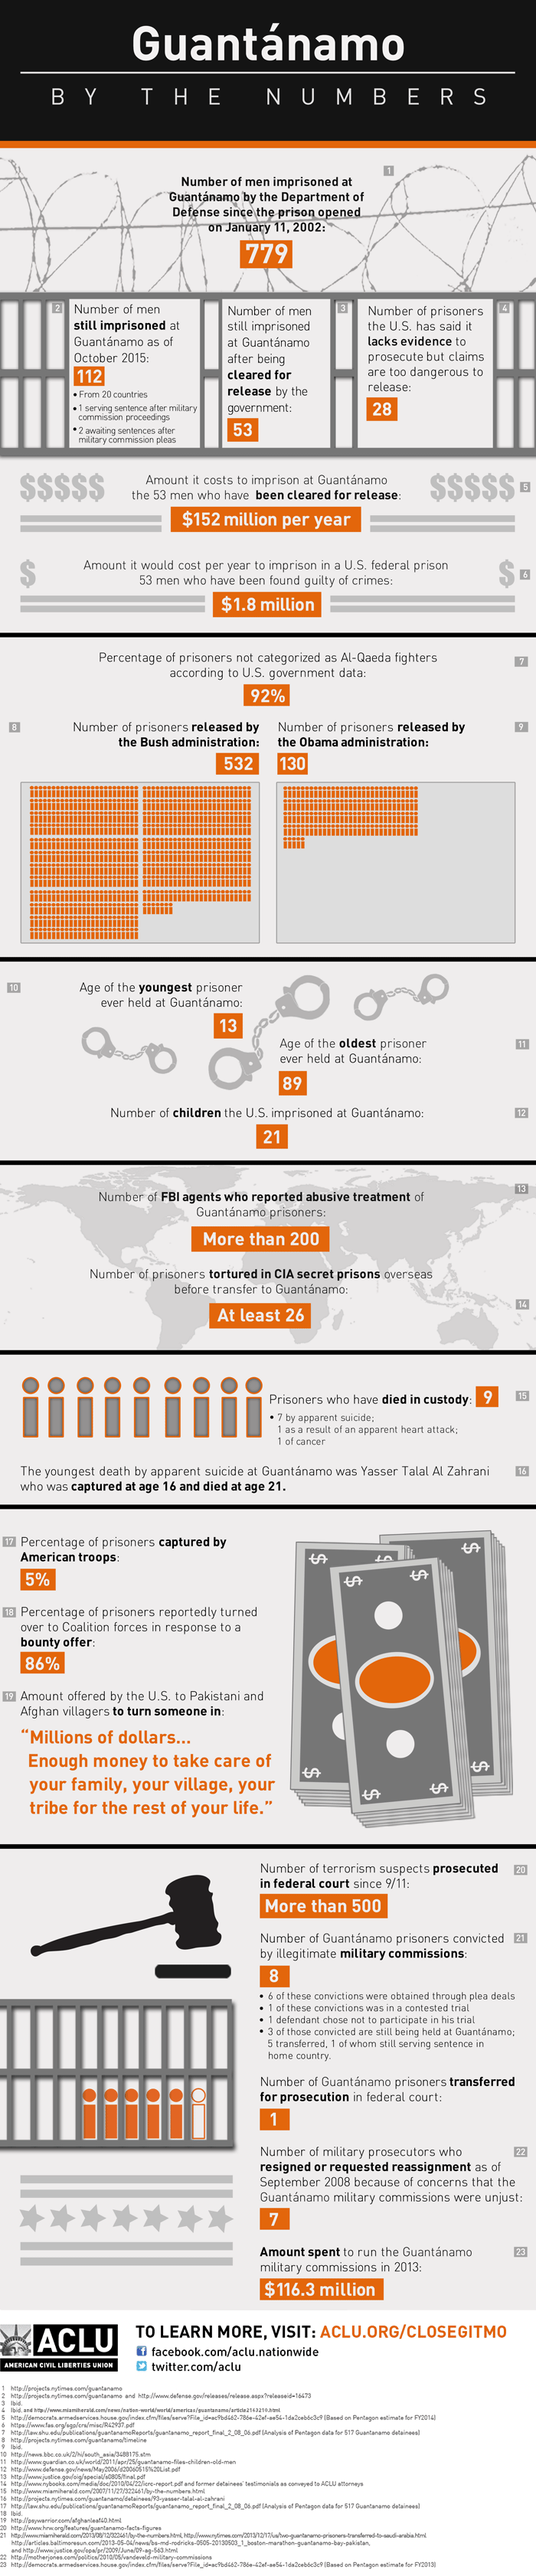 Guantanamo by the Numbers